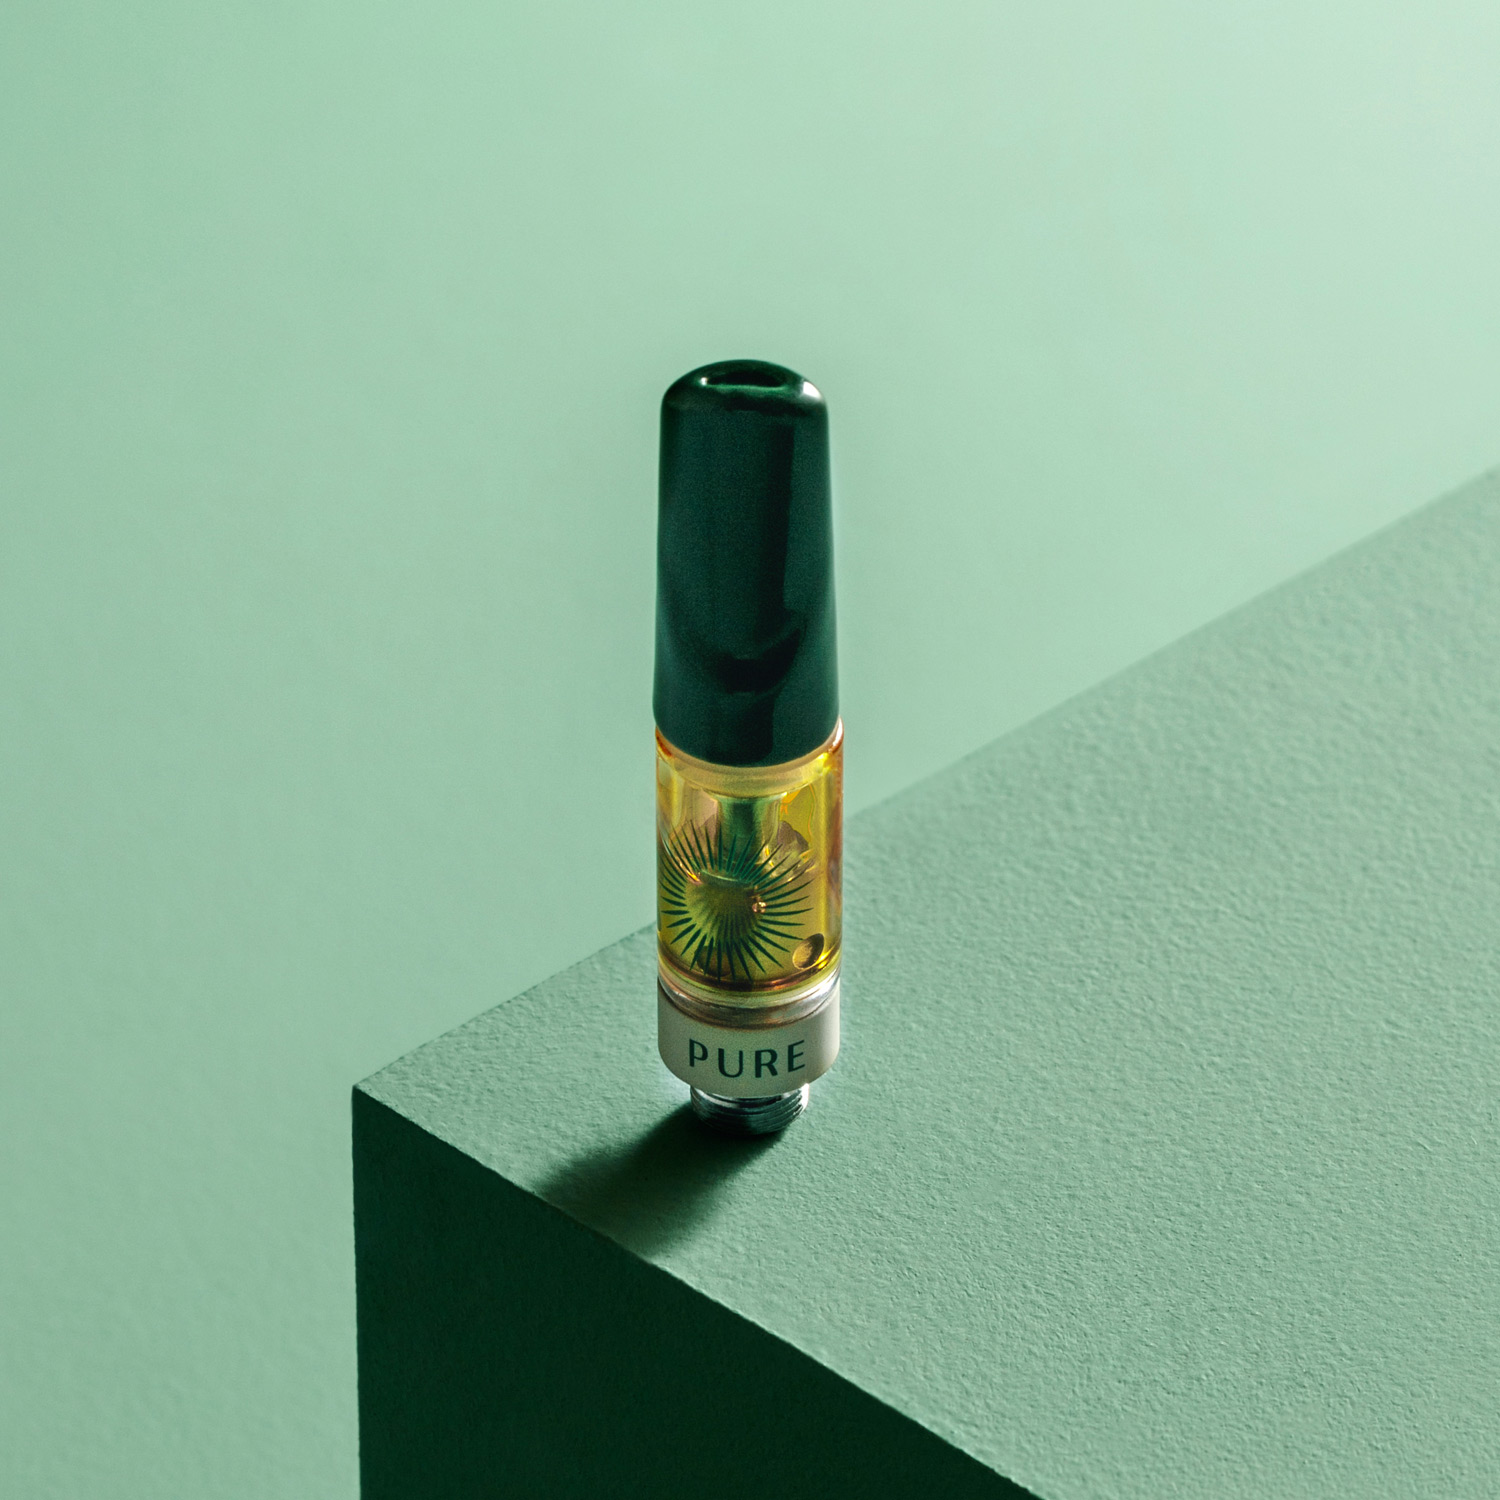 Pure Sunfarms High THC Vape cart sitting upright on the corner of a green table with a green background